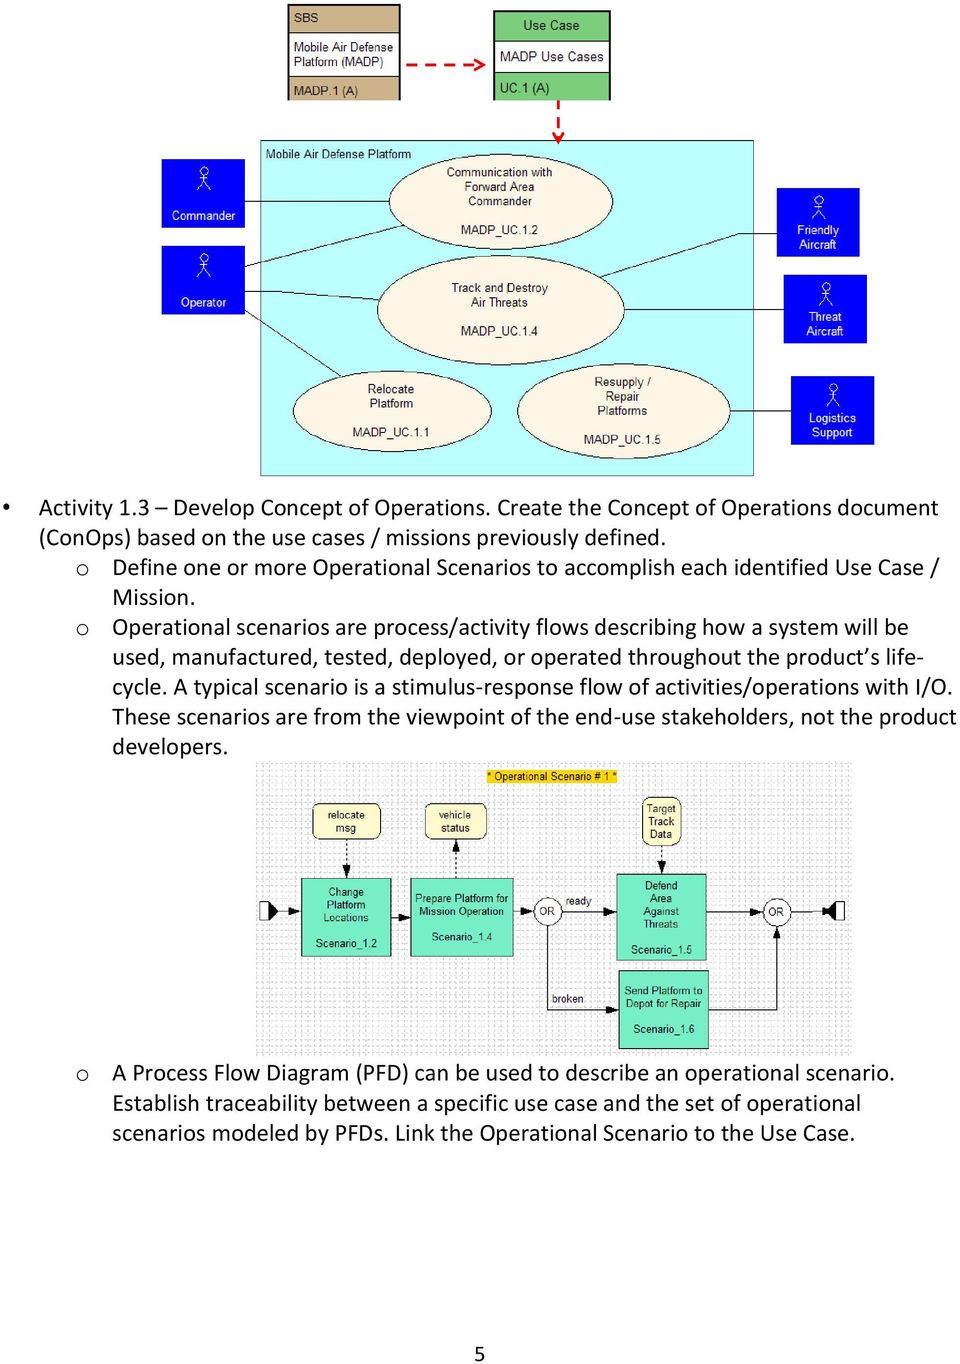 o Operational scenarios are process/activity flows describing how a system will be used, manufactured, tested, deployed, or operated throughout the product s lifecycle.